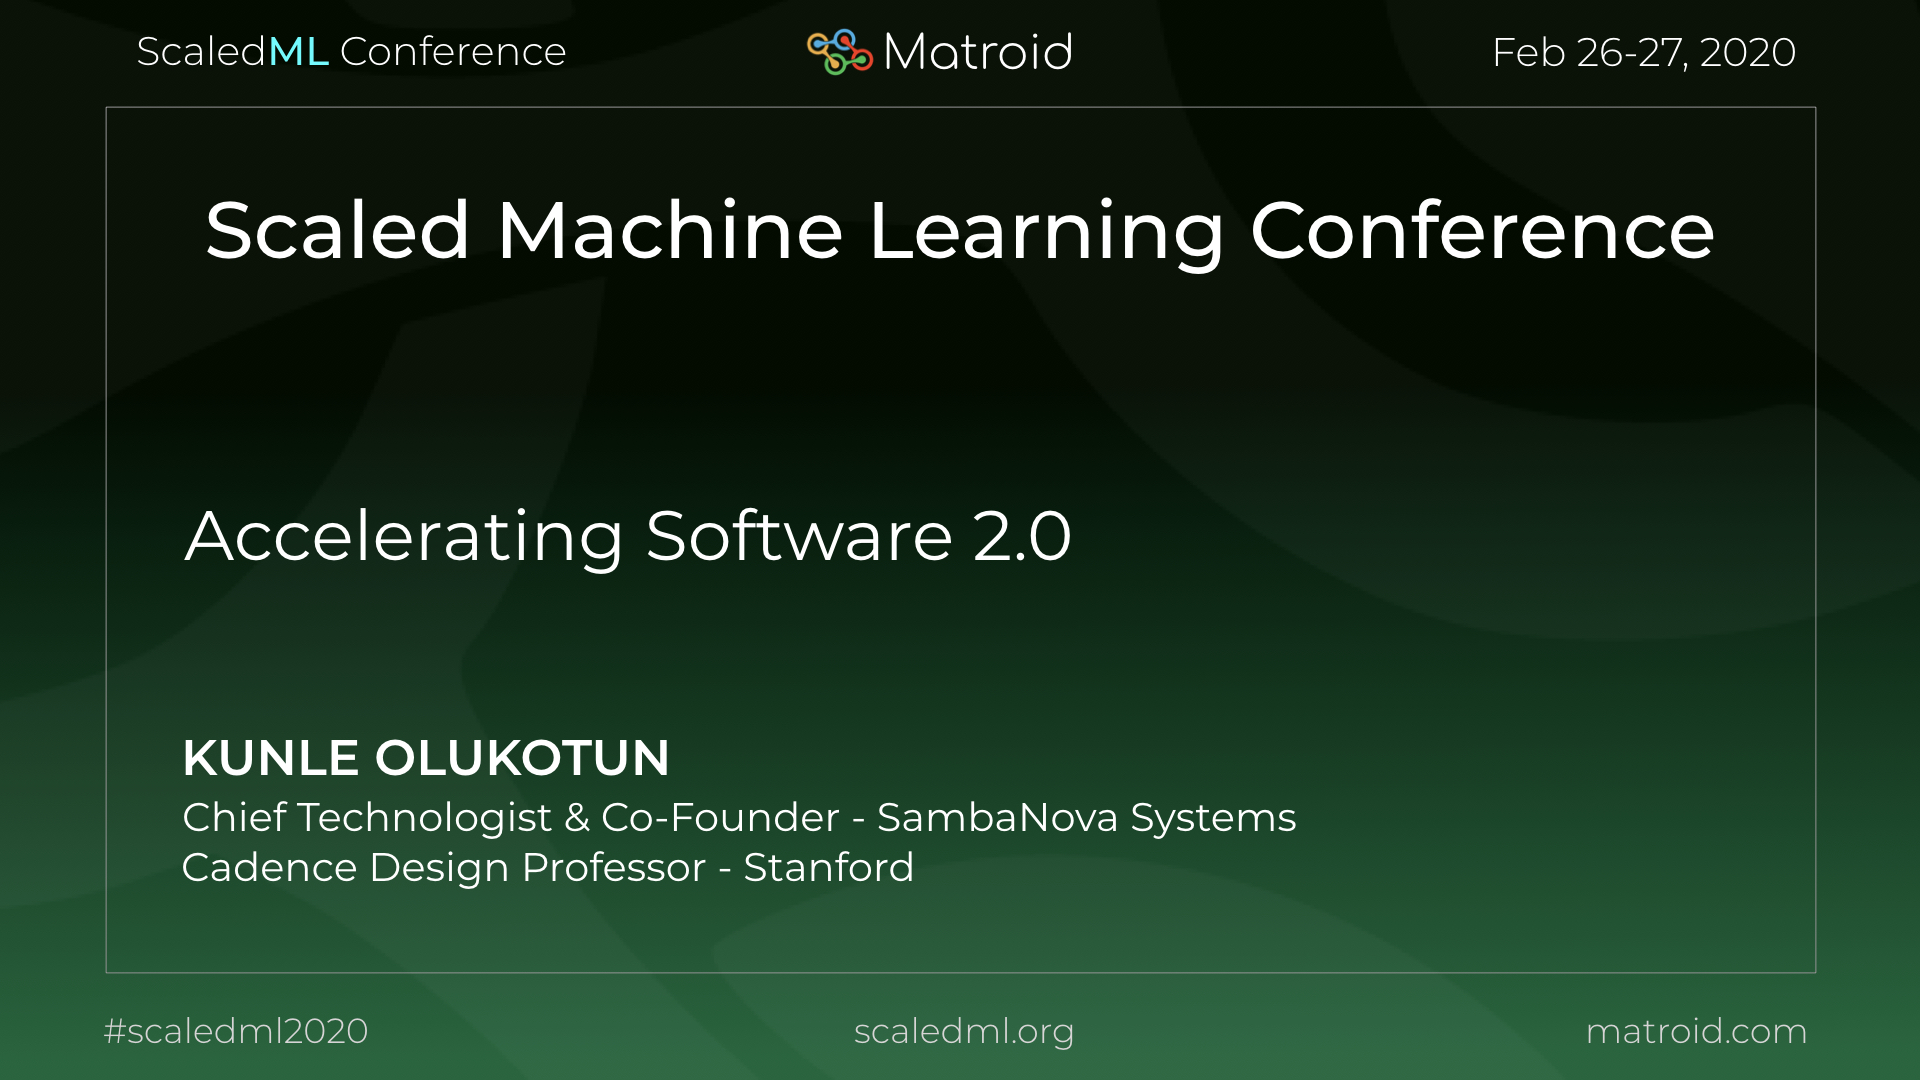 Kunle Olukotun ScaledML Conference CPU GPU TPU Computer Vision AI Artificial Intelligence Machine Learning